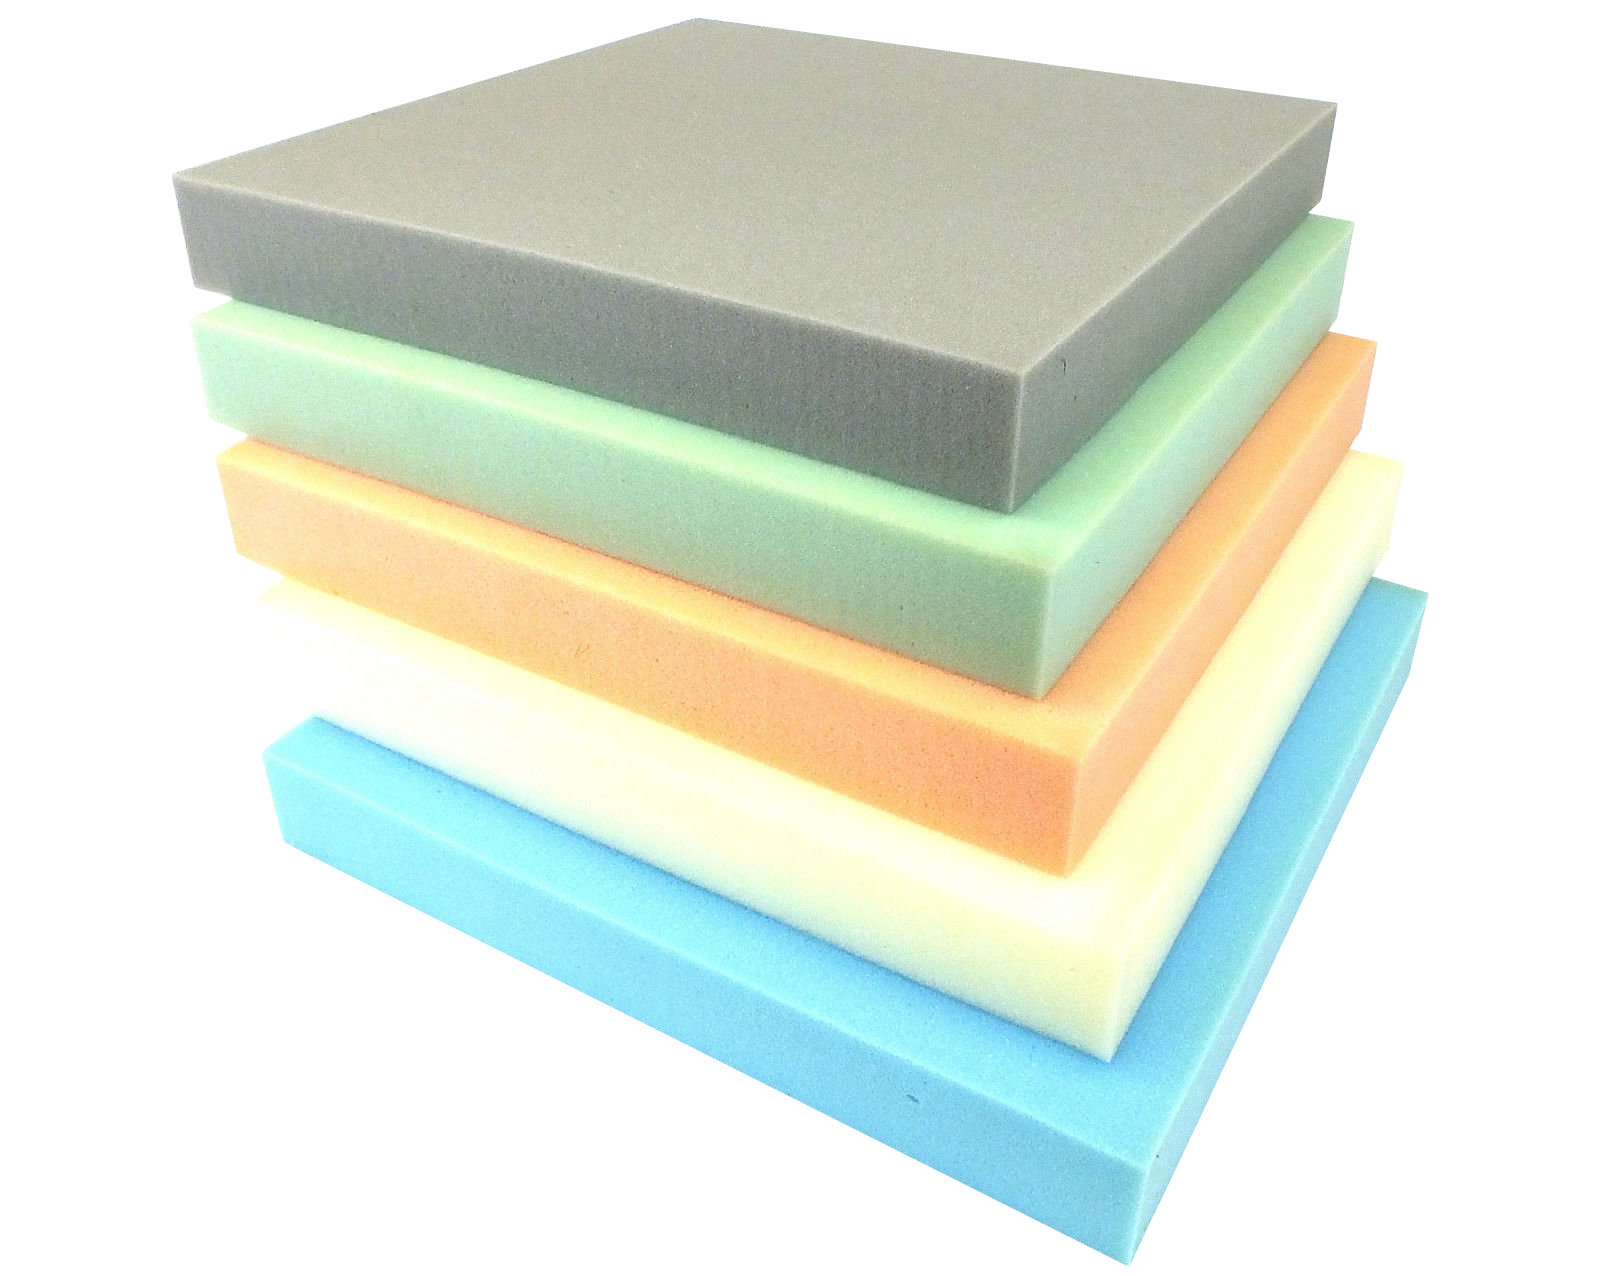 High Density Upholstery Foam for Best Cushions Material Ideas: High Density Upholstery Foam | Dense Foam For Cushions | Foam Sheets For Upholstery